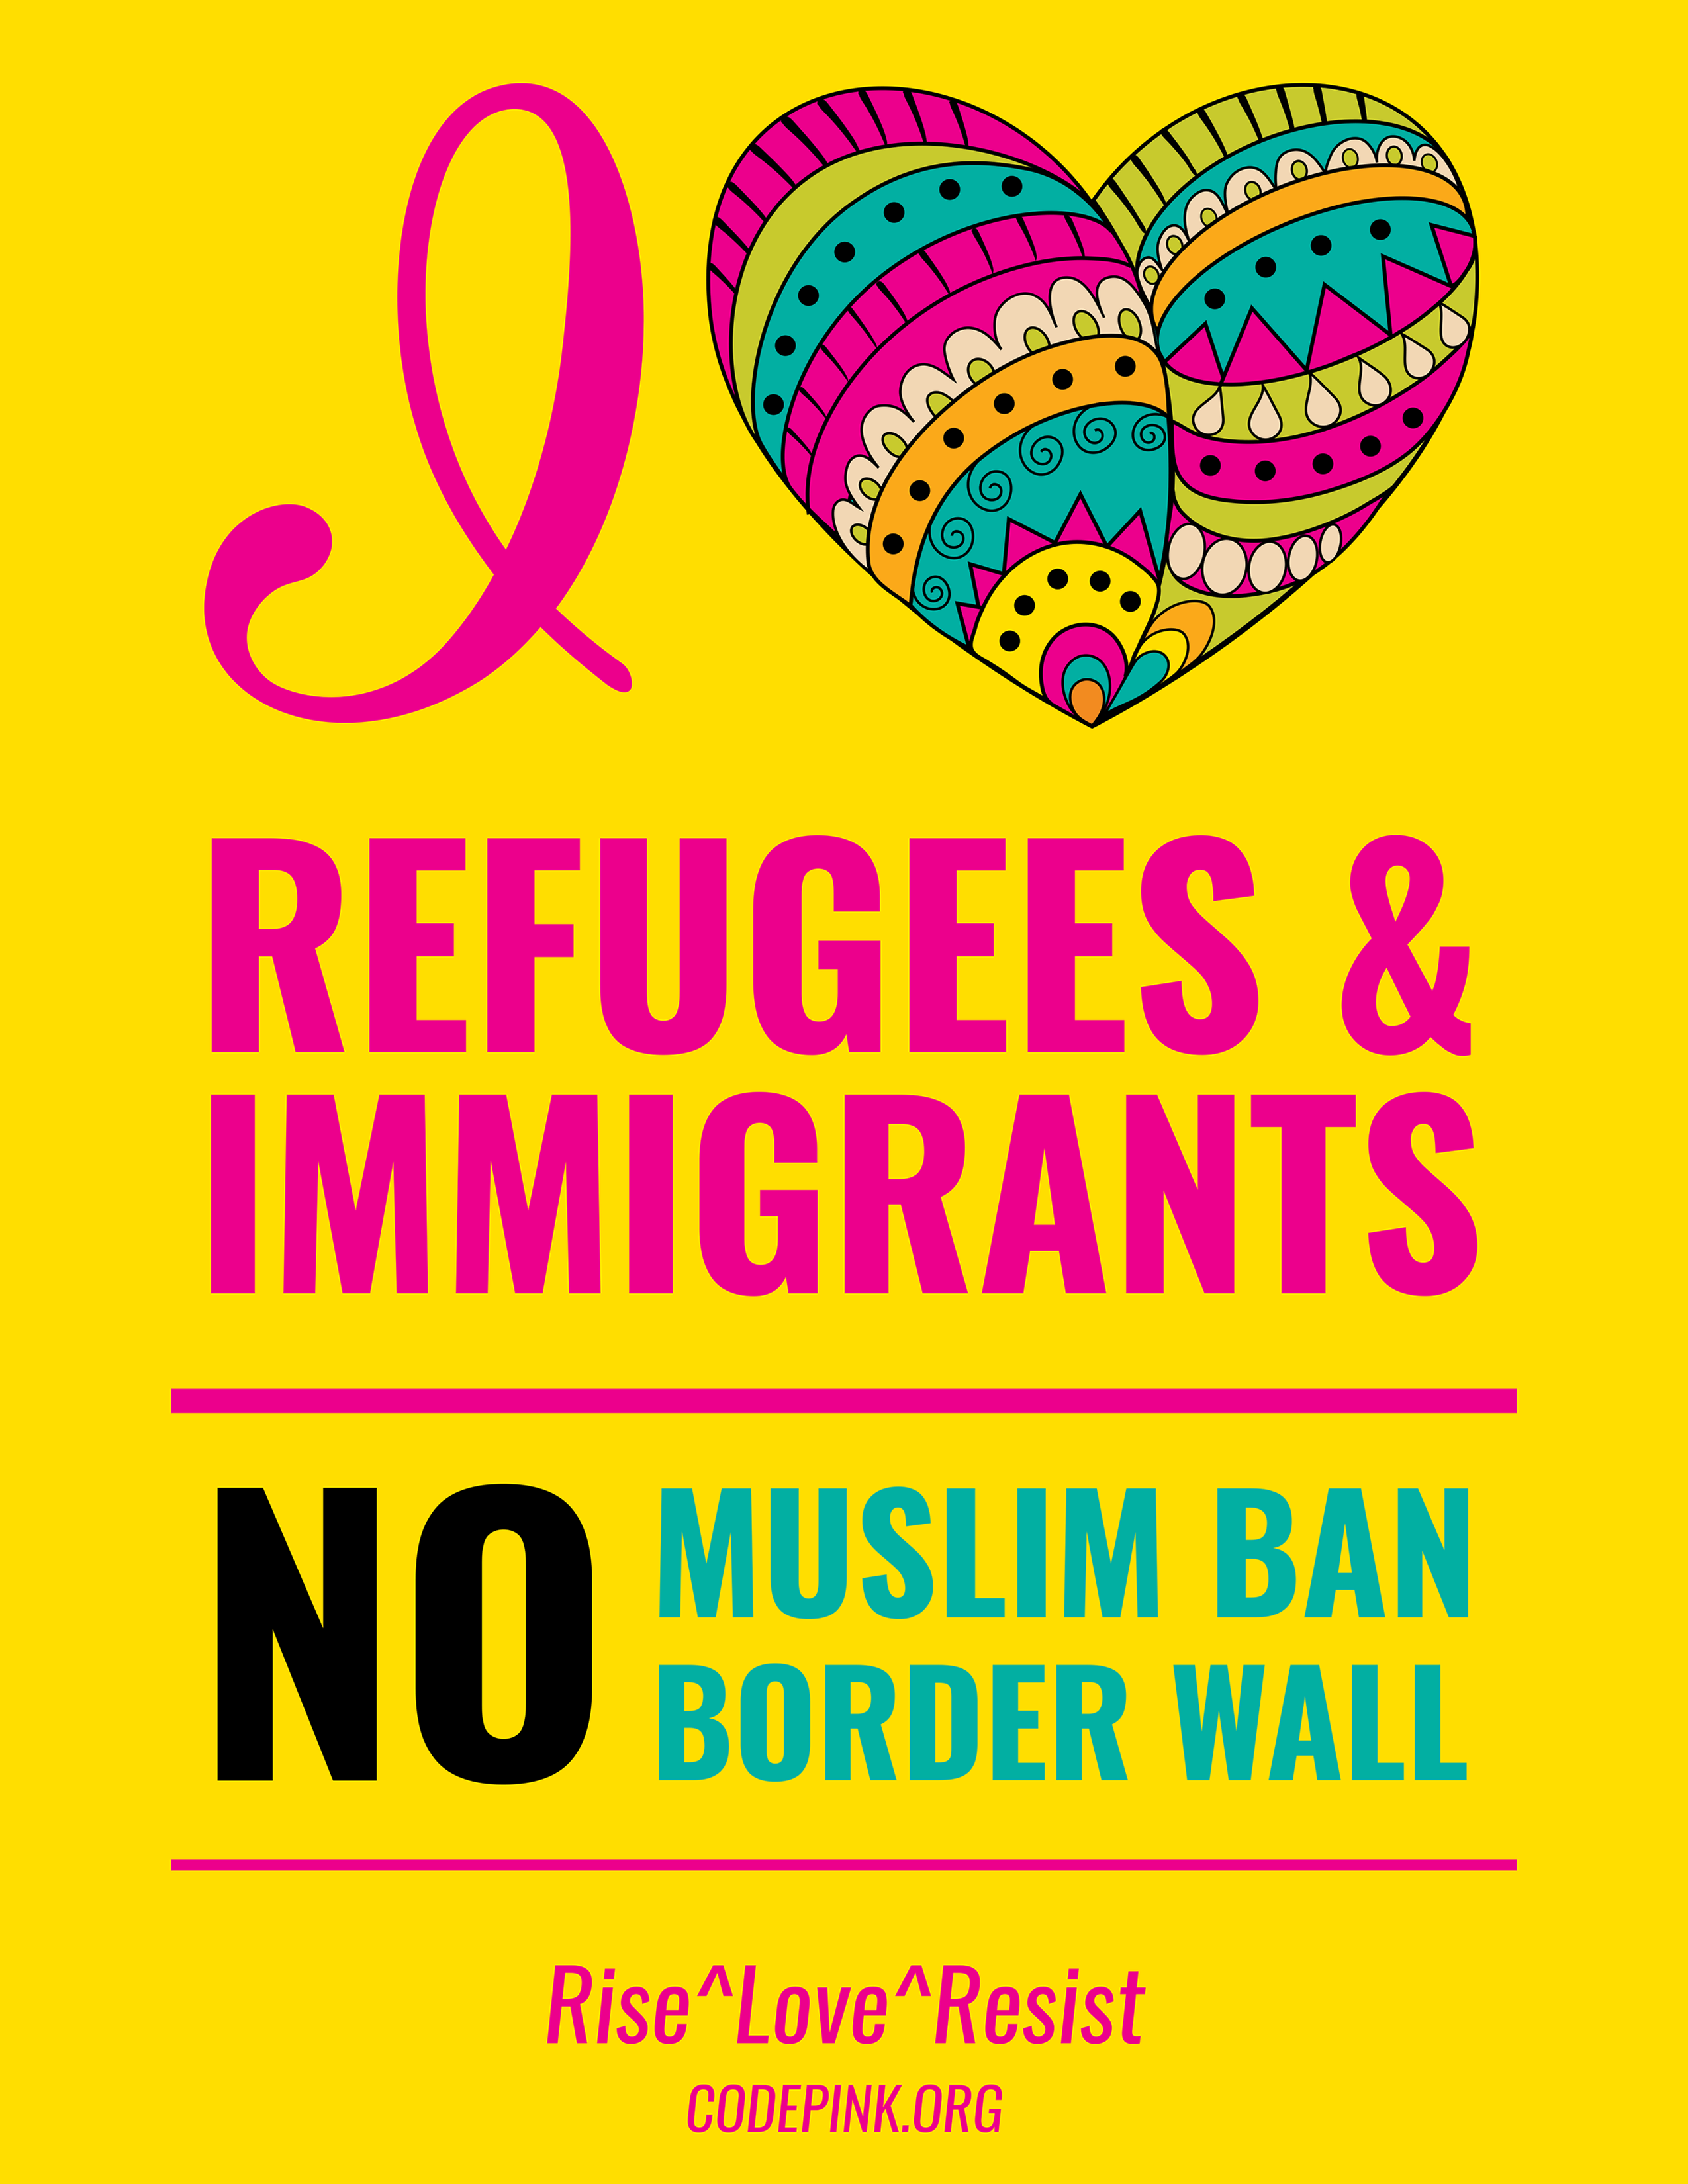 I_HEART_REFUGEES_yellow_codepink_v3_11x17.png